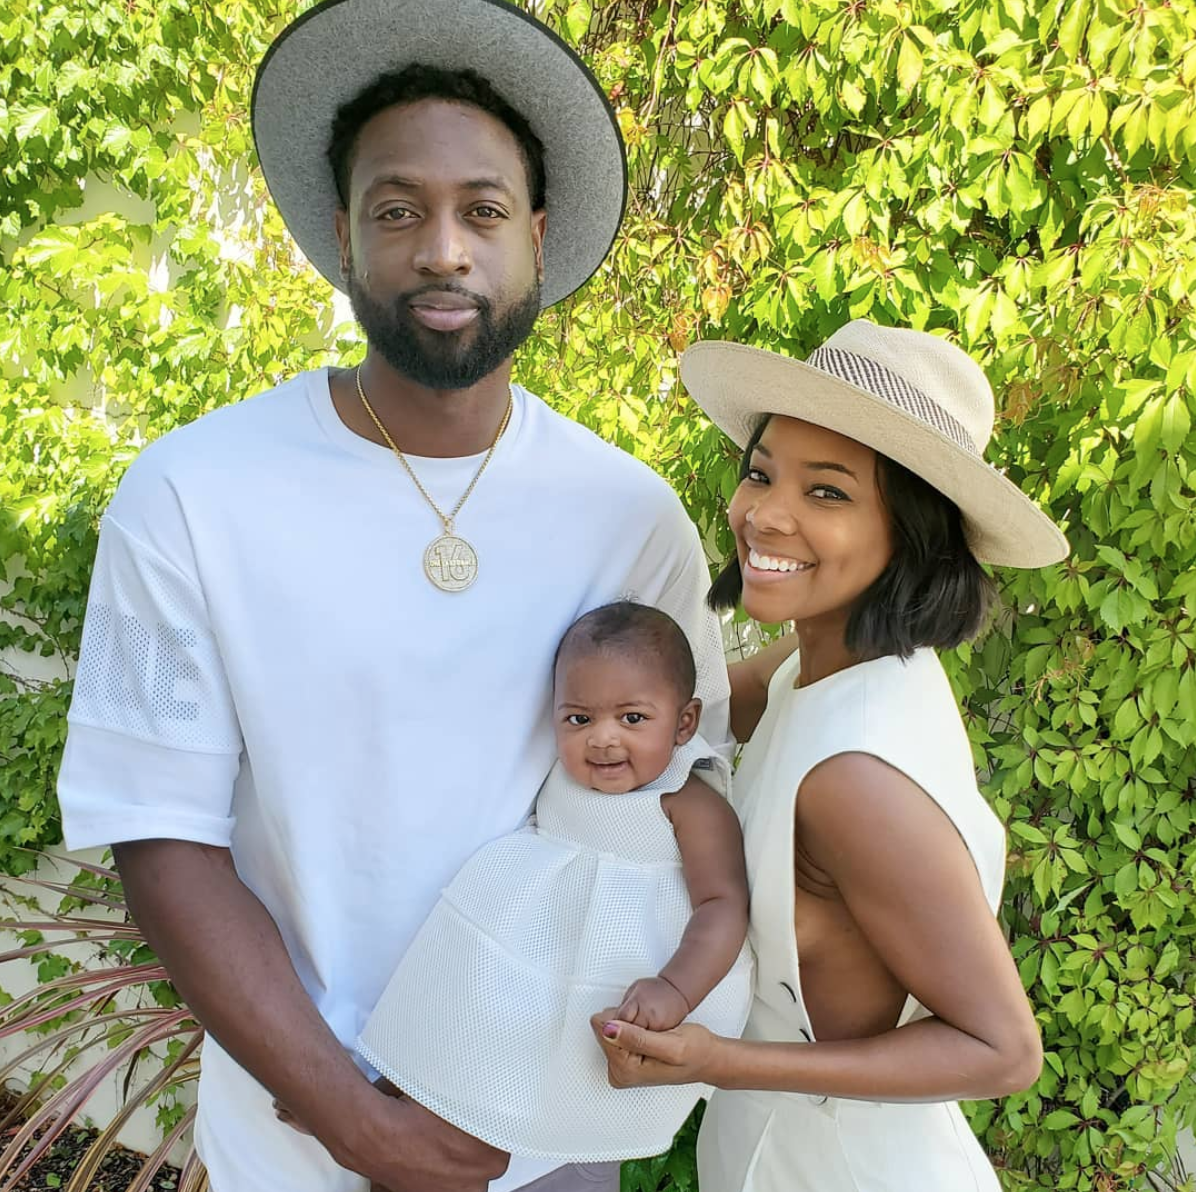 Gabrielle Union shares the moment she first met her daughter